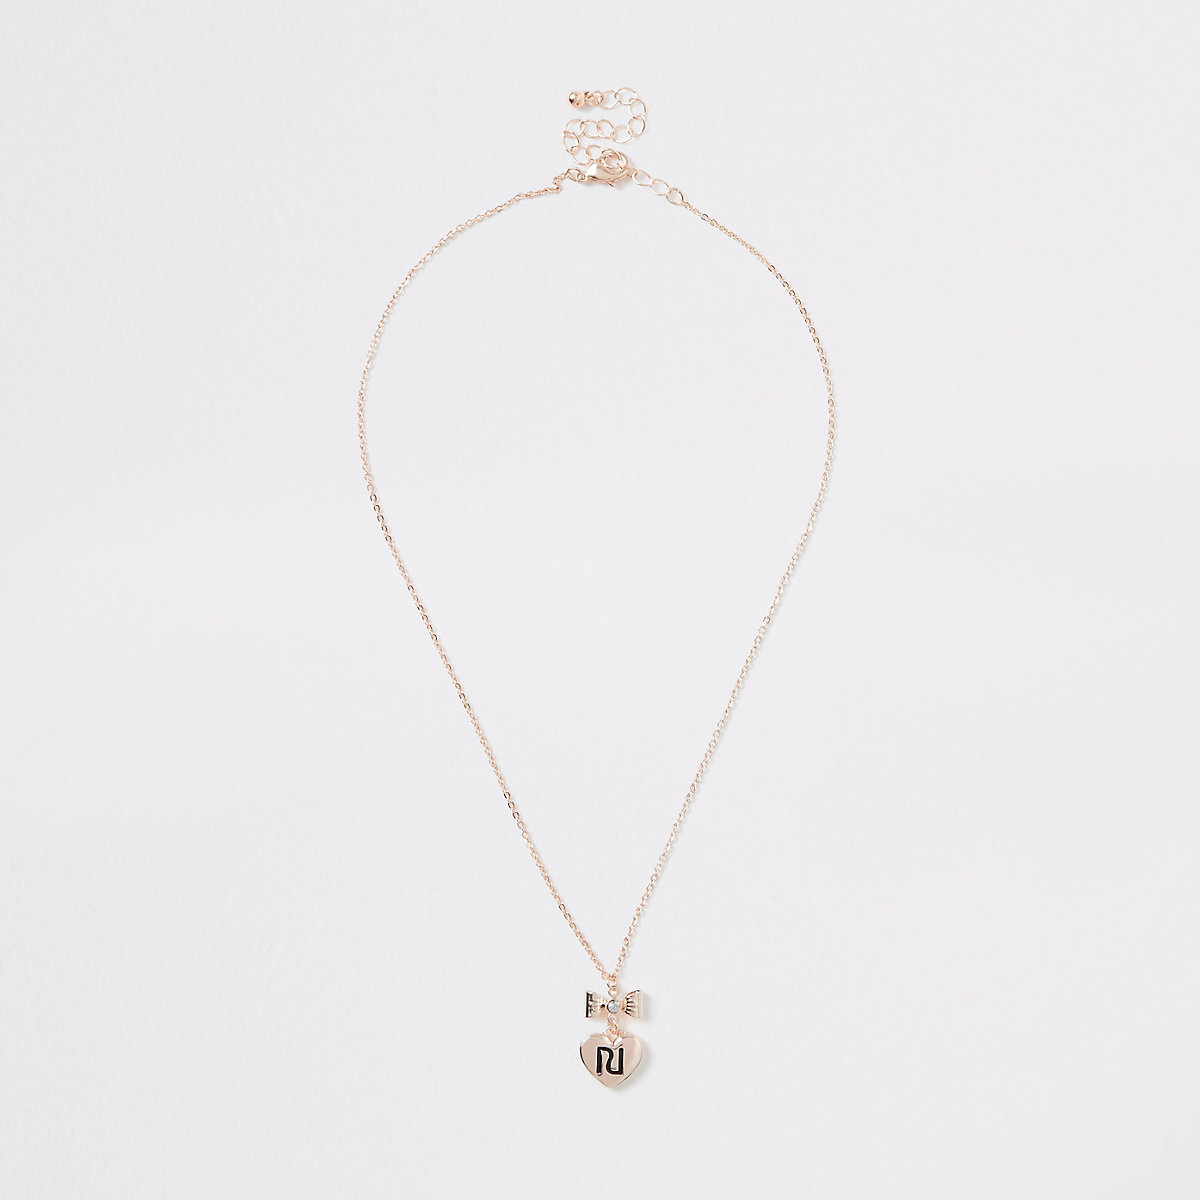 Girls gold color RI bow necklace